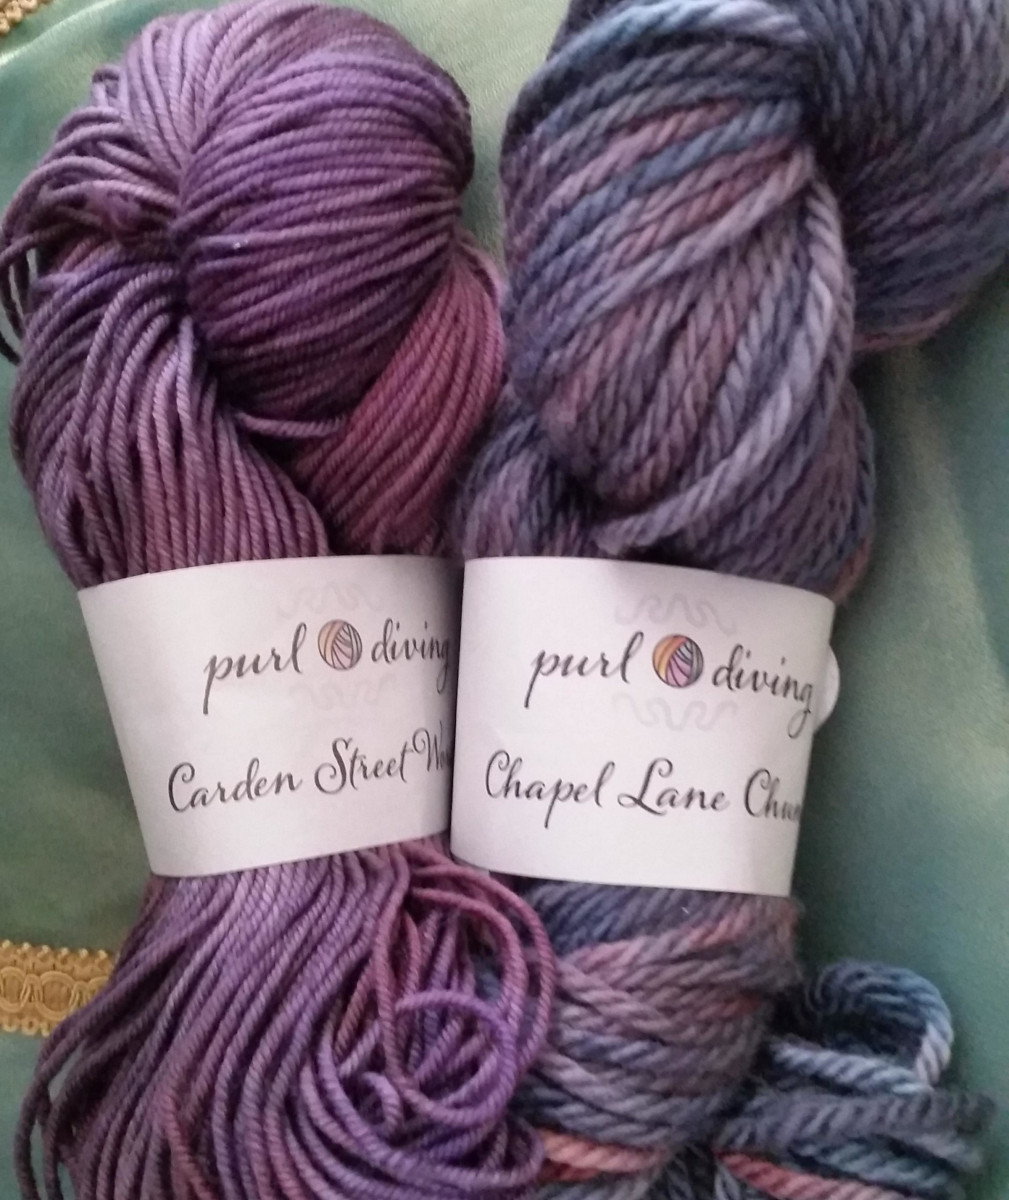 carden street worsted and chapel lane chunky by Purl Diving